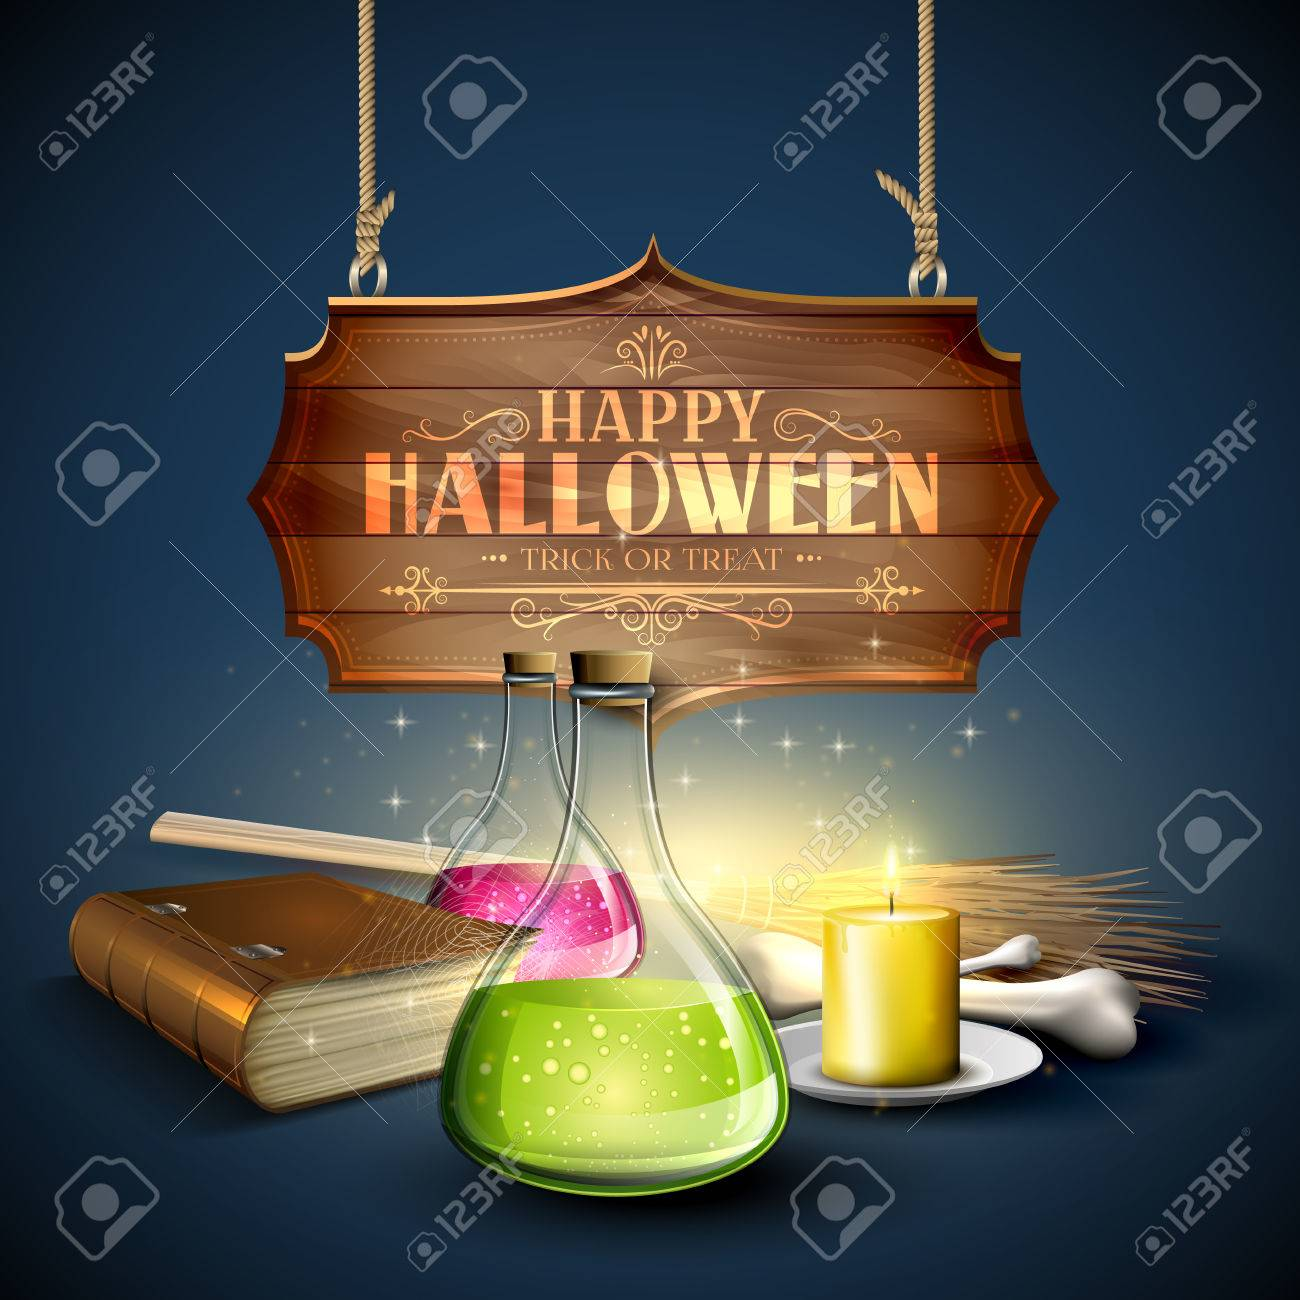 halloween greeting card - tubes with potions, old book, pumpkins and